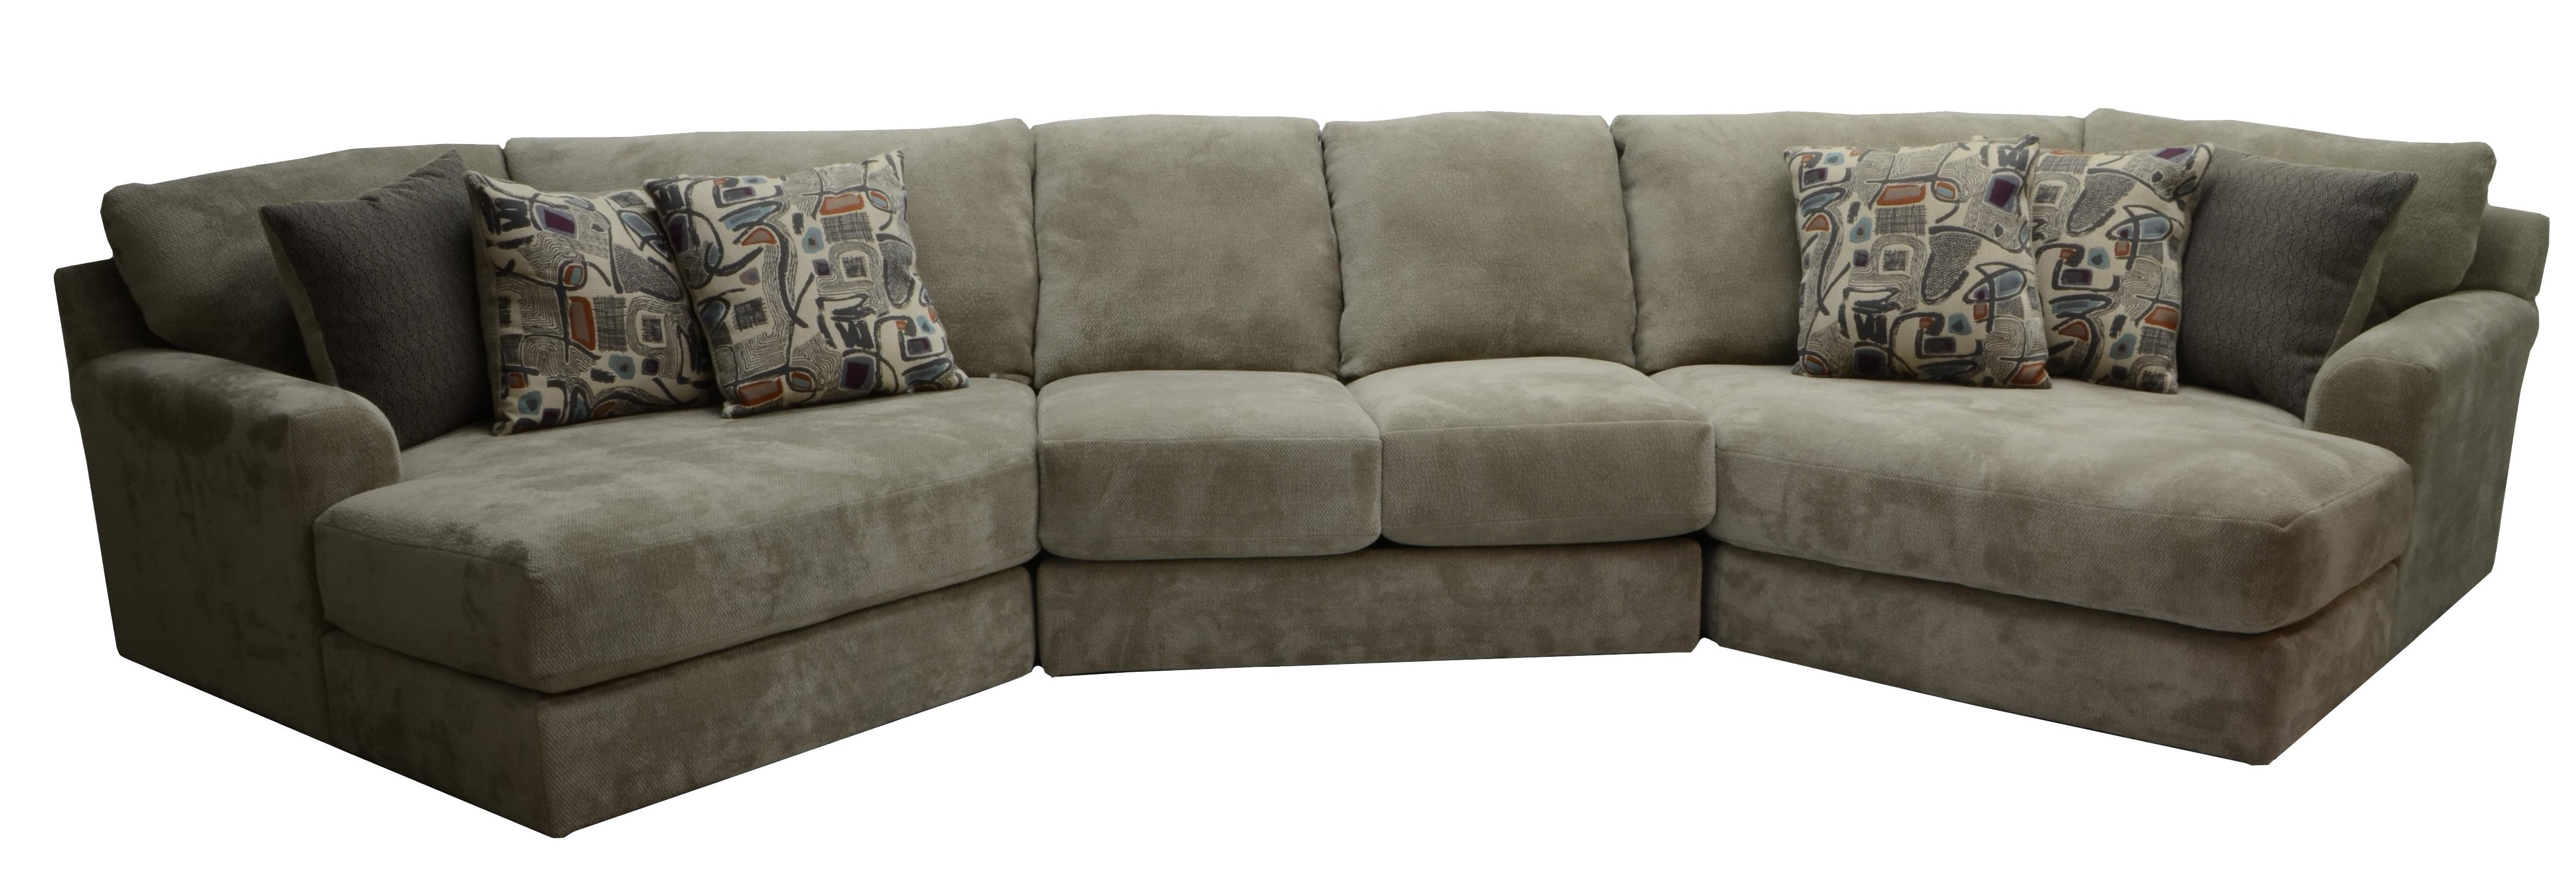 16 Wedge Sectional Sofa (View 2 of 20)